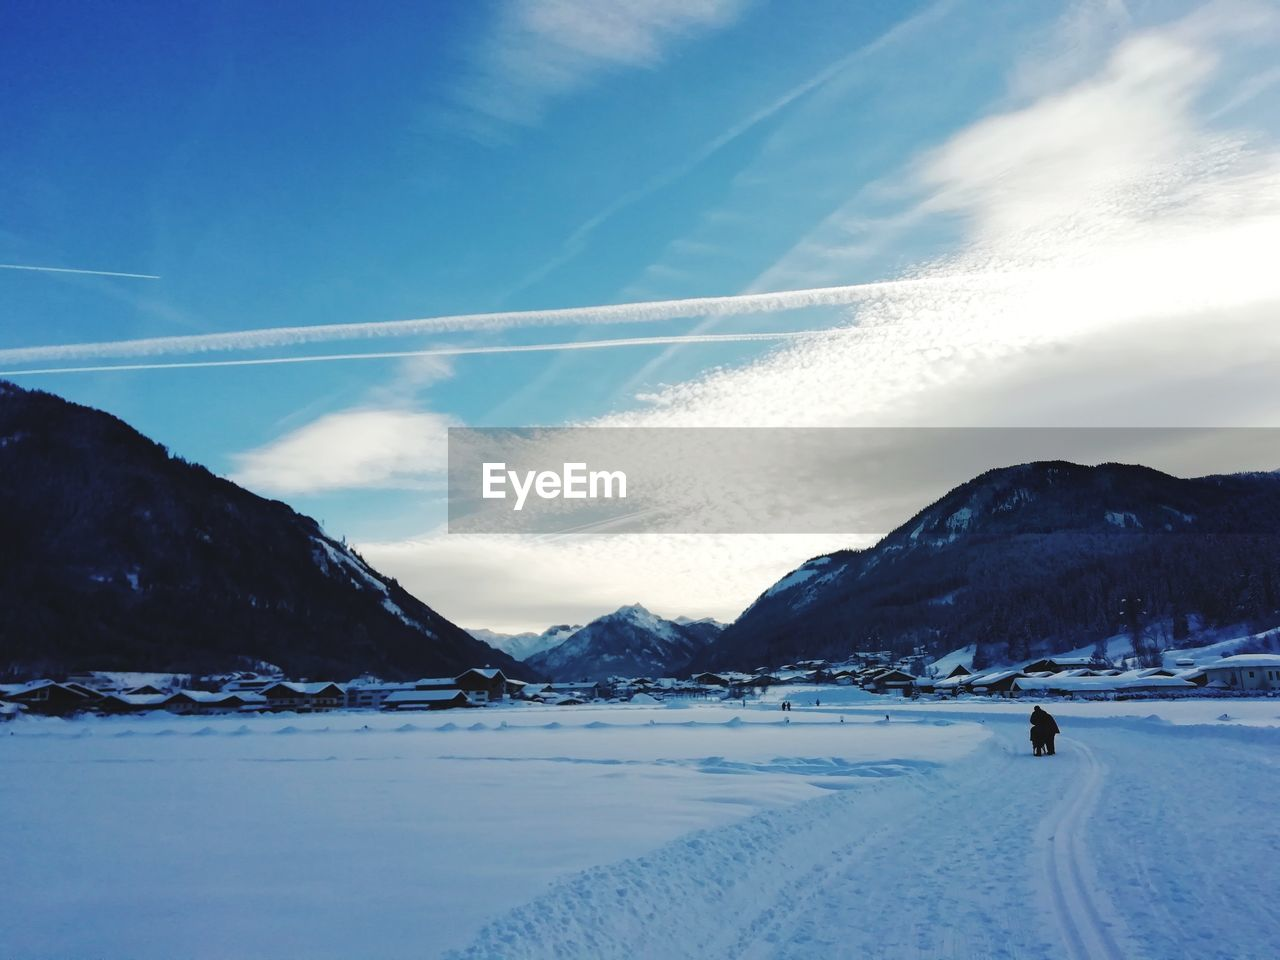 sky, mountain, cold temperature, snow, winter, cloud - sky, scenics - nature, beauty in nature, environment, nature, landscape, non-urban scene, mountain range, day, tranquil scene, tranquility, snowcapped mountain, sport, white color, vapor trail